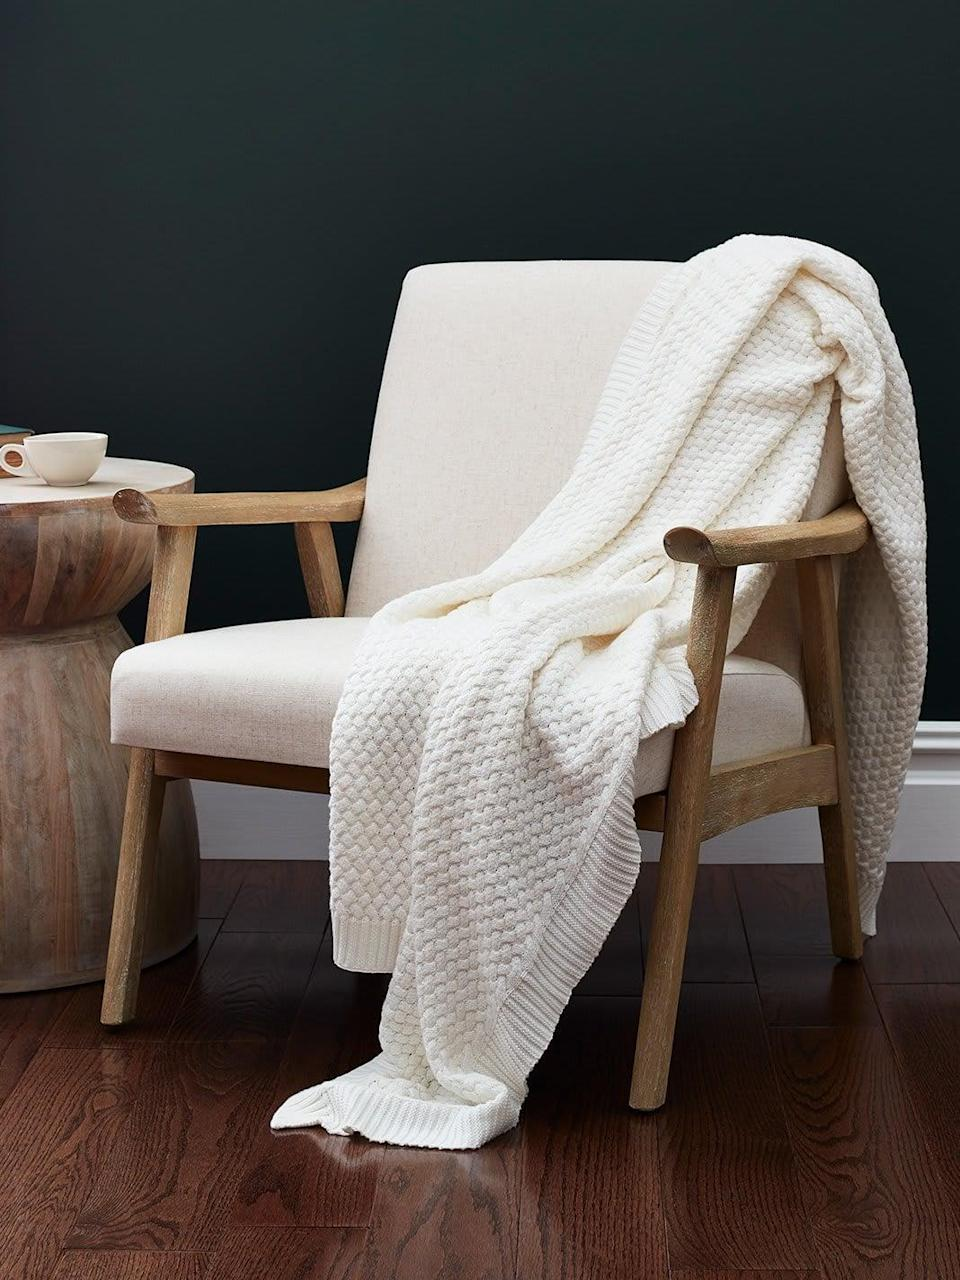 <p>Made from organic cotton, the <span>Boll & Branch Chunky Knit Throw Blanket</span> ($125) is as soft as ever and will be a welcomed addition to anyone's living room. </p>